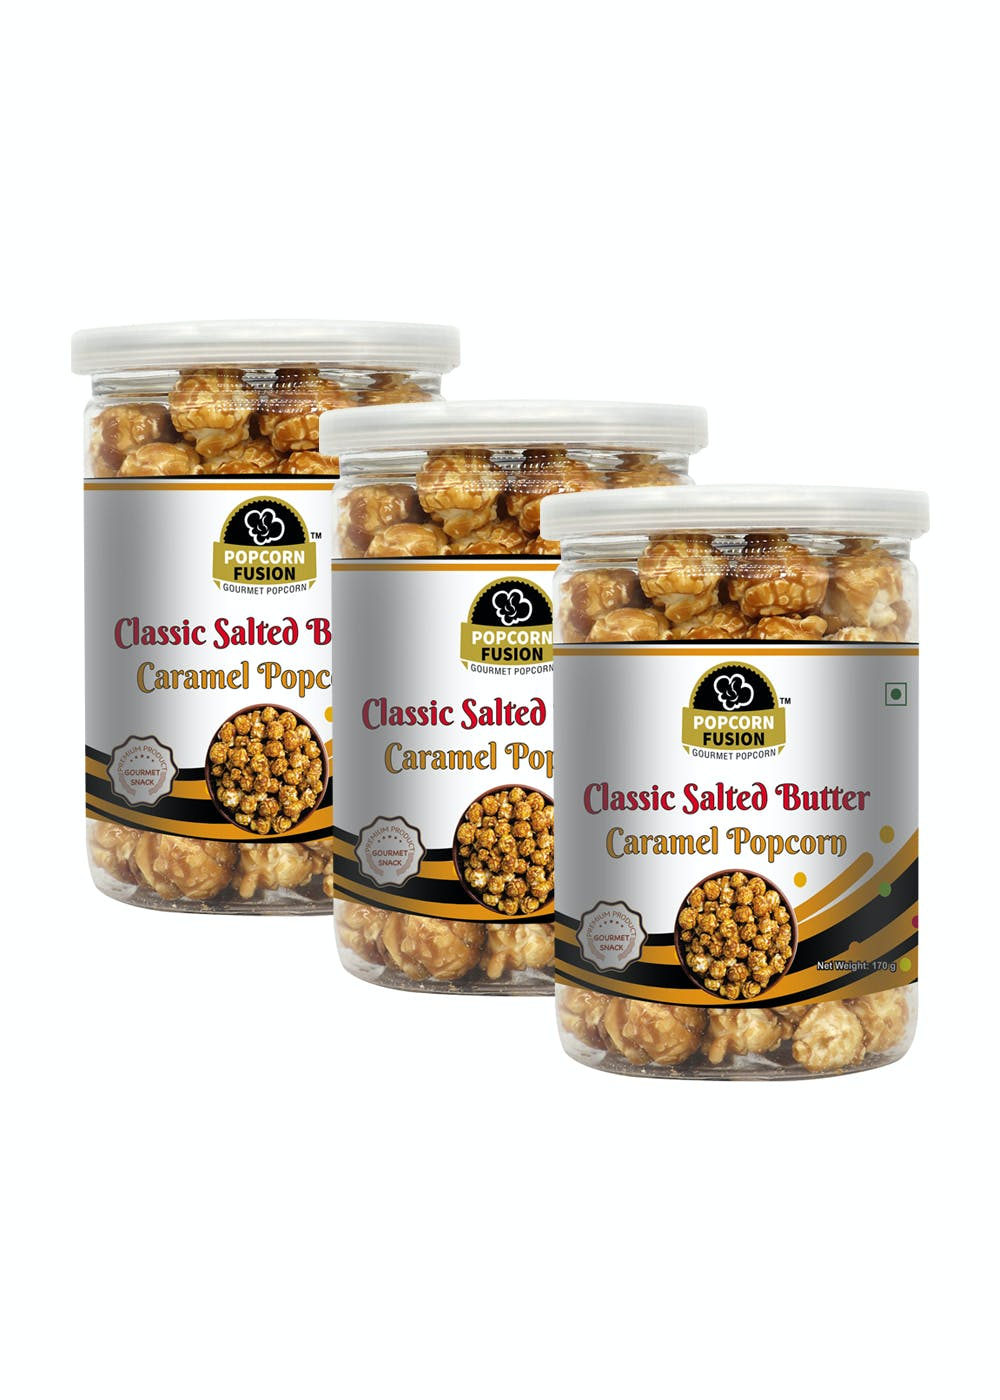 Pack of 3 Gourmet Popcorn-Classic Salted Butter Caramel Popcorn-170g